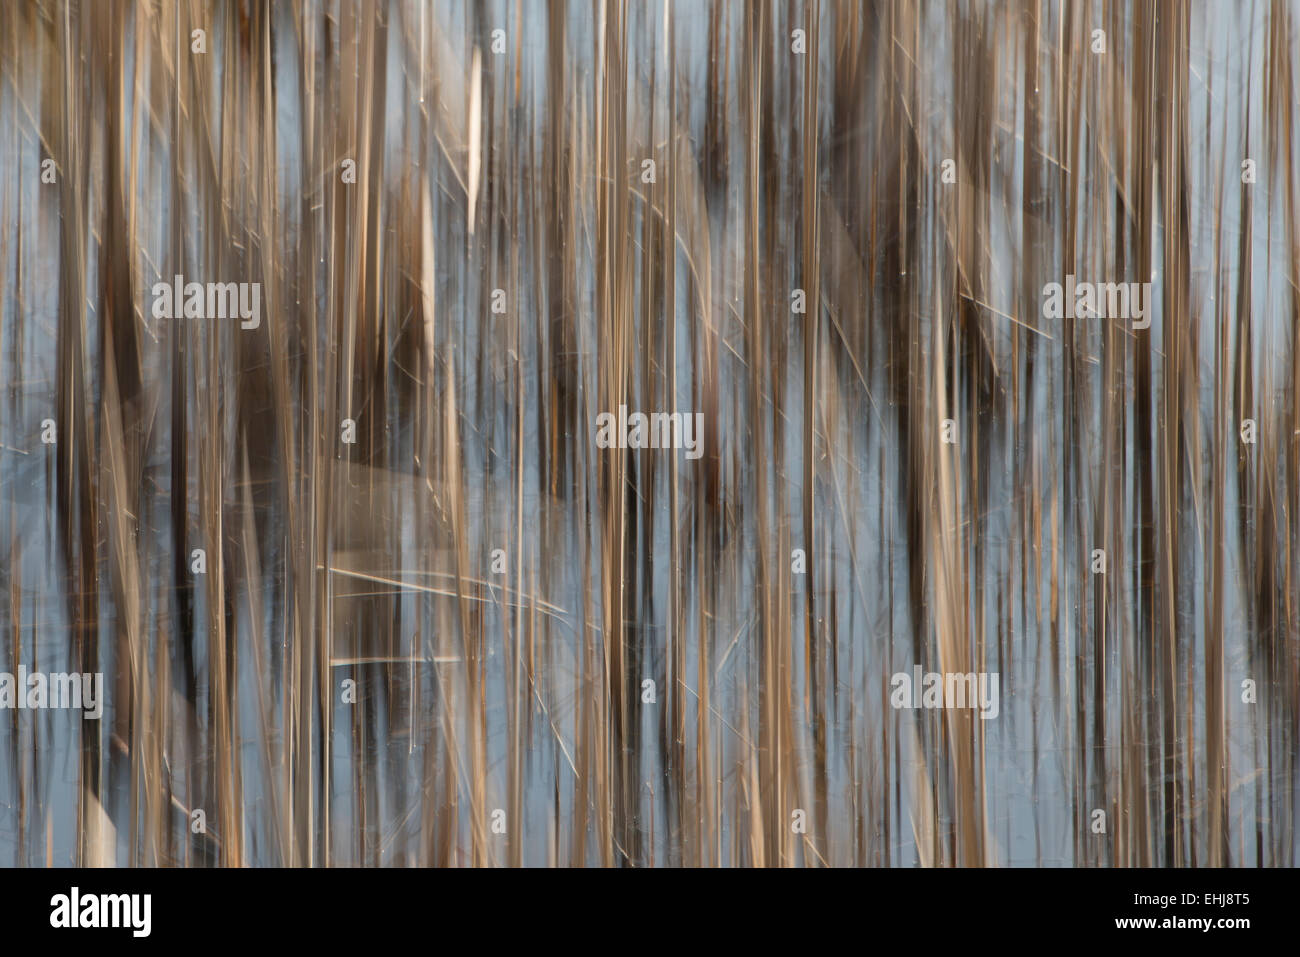 Abstract cane stems - Stock Image